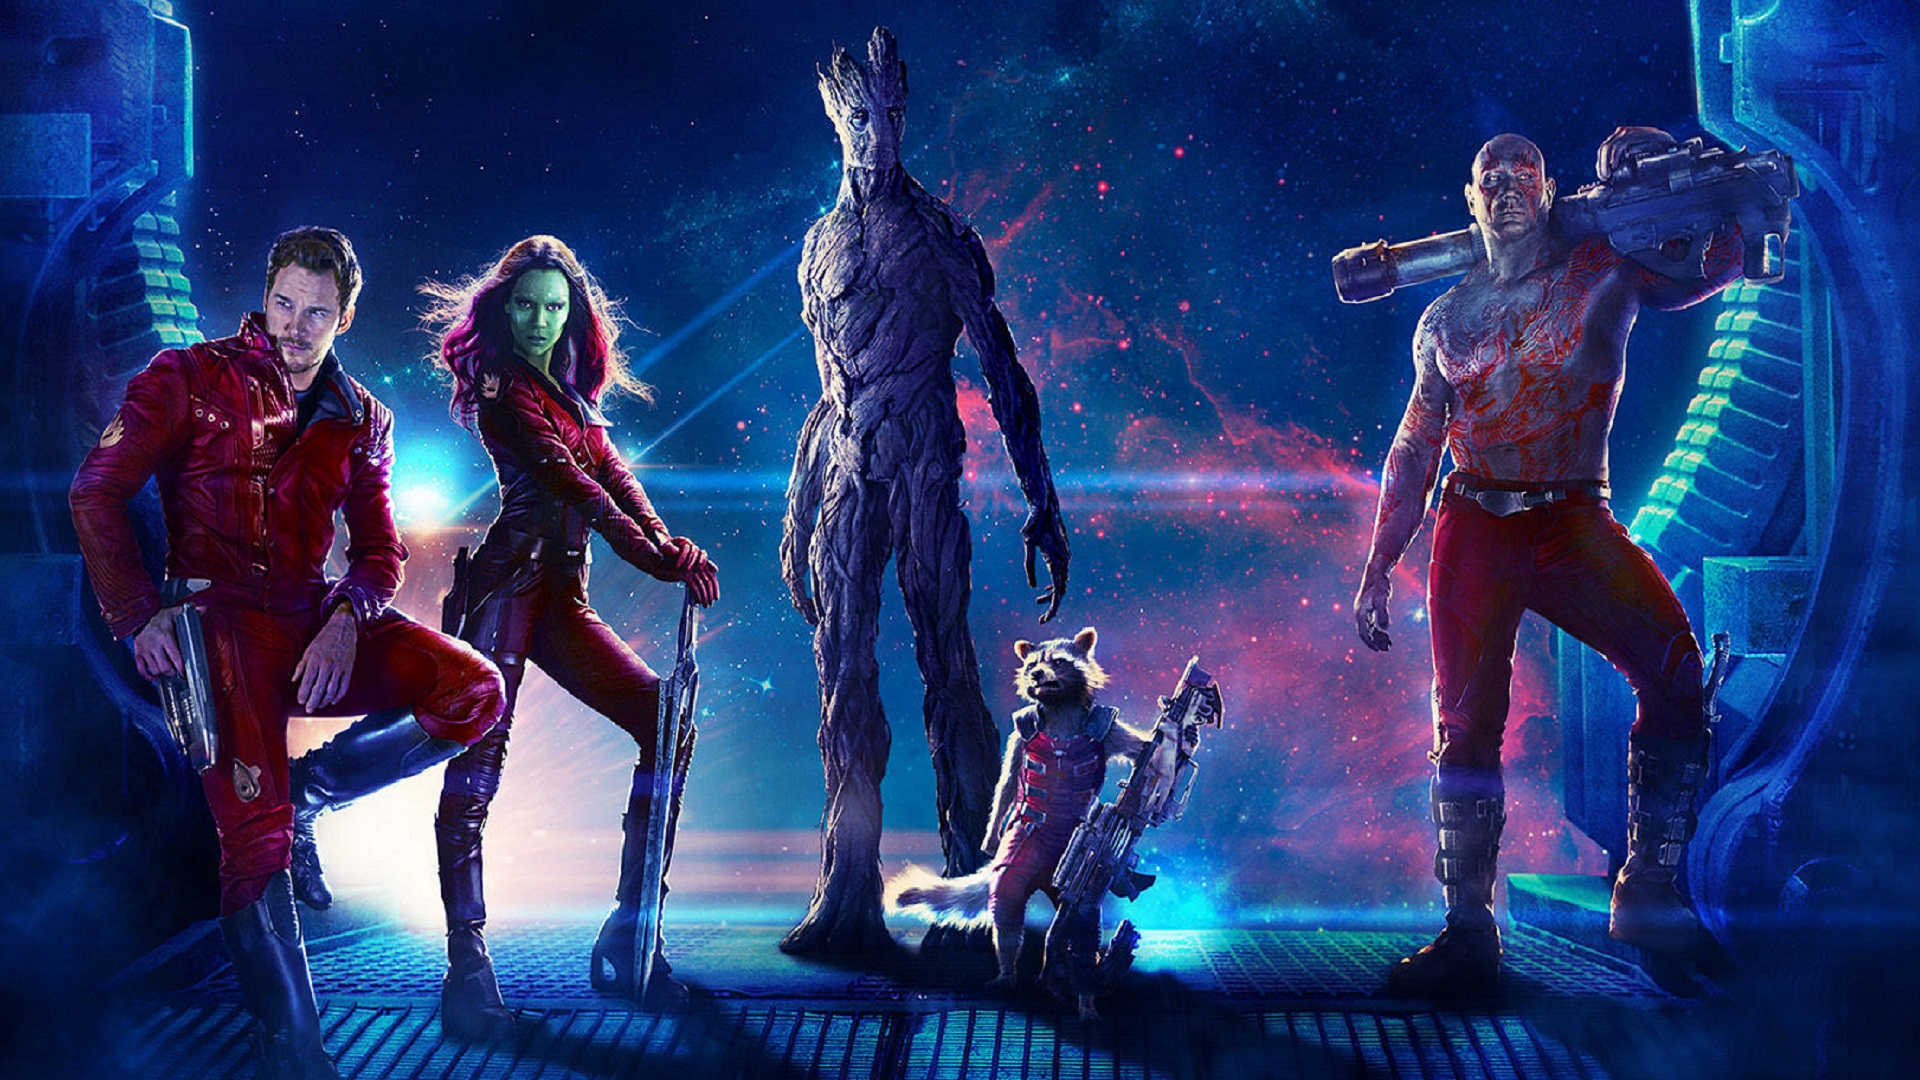 Free Download Guardians Of The Galaxy 2 Movie Hd Wallpaper Wallpapers 1920x1080 For Your Desktop Mobile Tablet Explore 67 Guardians Of The Galaxy 2 Wallpapers Guardians Of The Galaxy